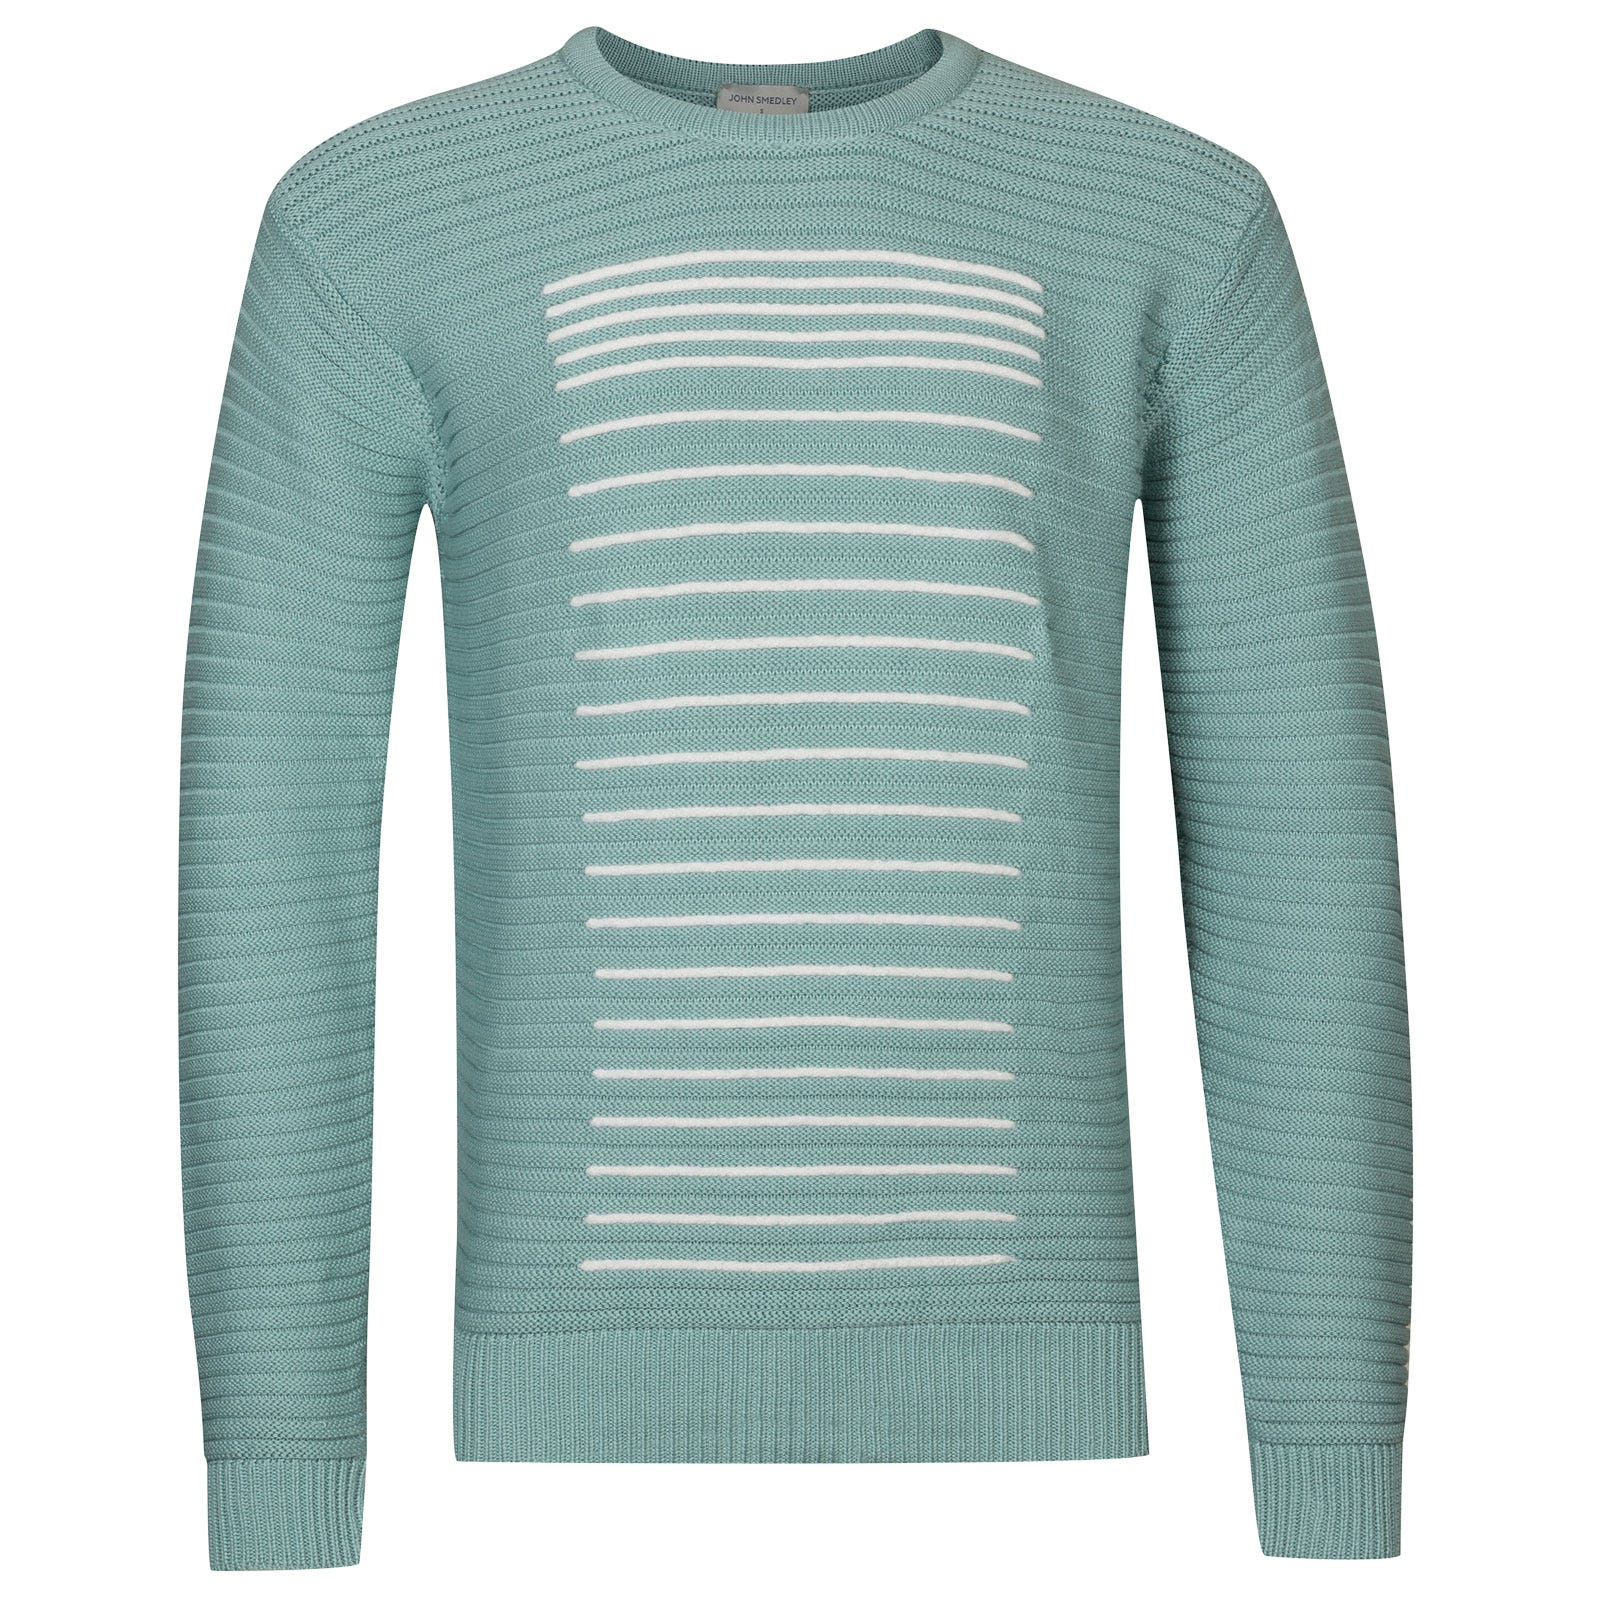 John Smedley Conder in Terrill Green/Snow White-Xxl